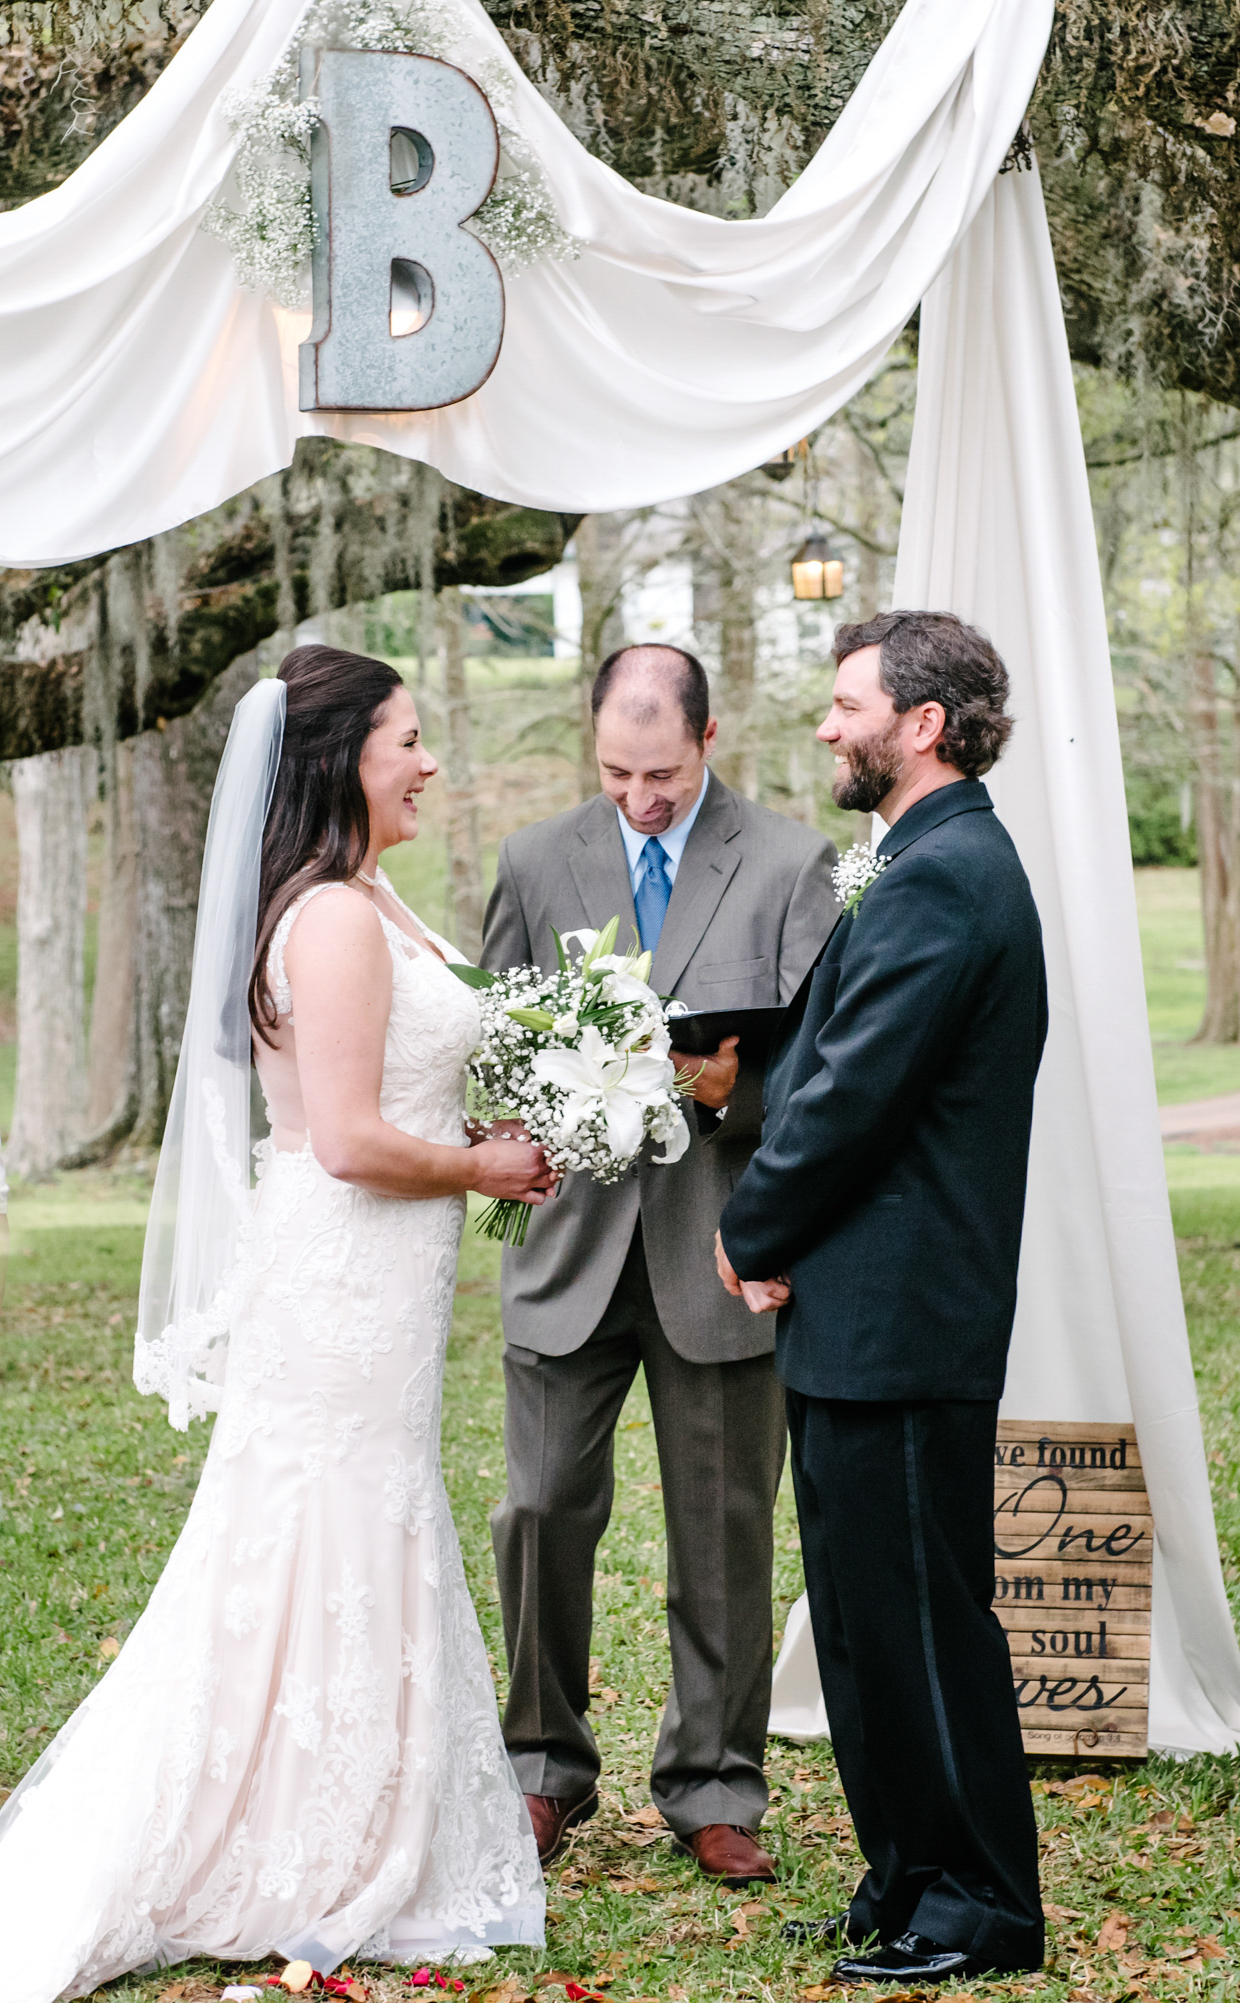 """Seriously can't thank you enough for our Wedding Day photos! This one especially - it shows our true selves before God and everyone!!! Thank you for capturing the moment. It will be forever cherished!""  Jerika"